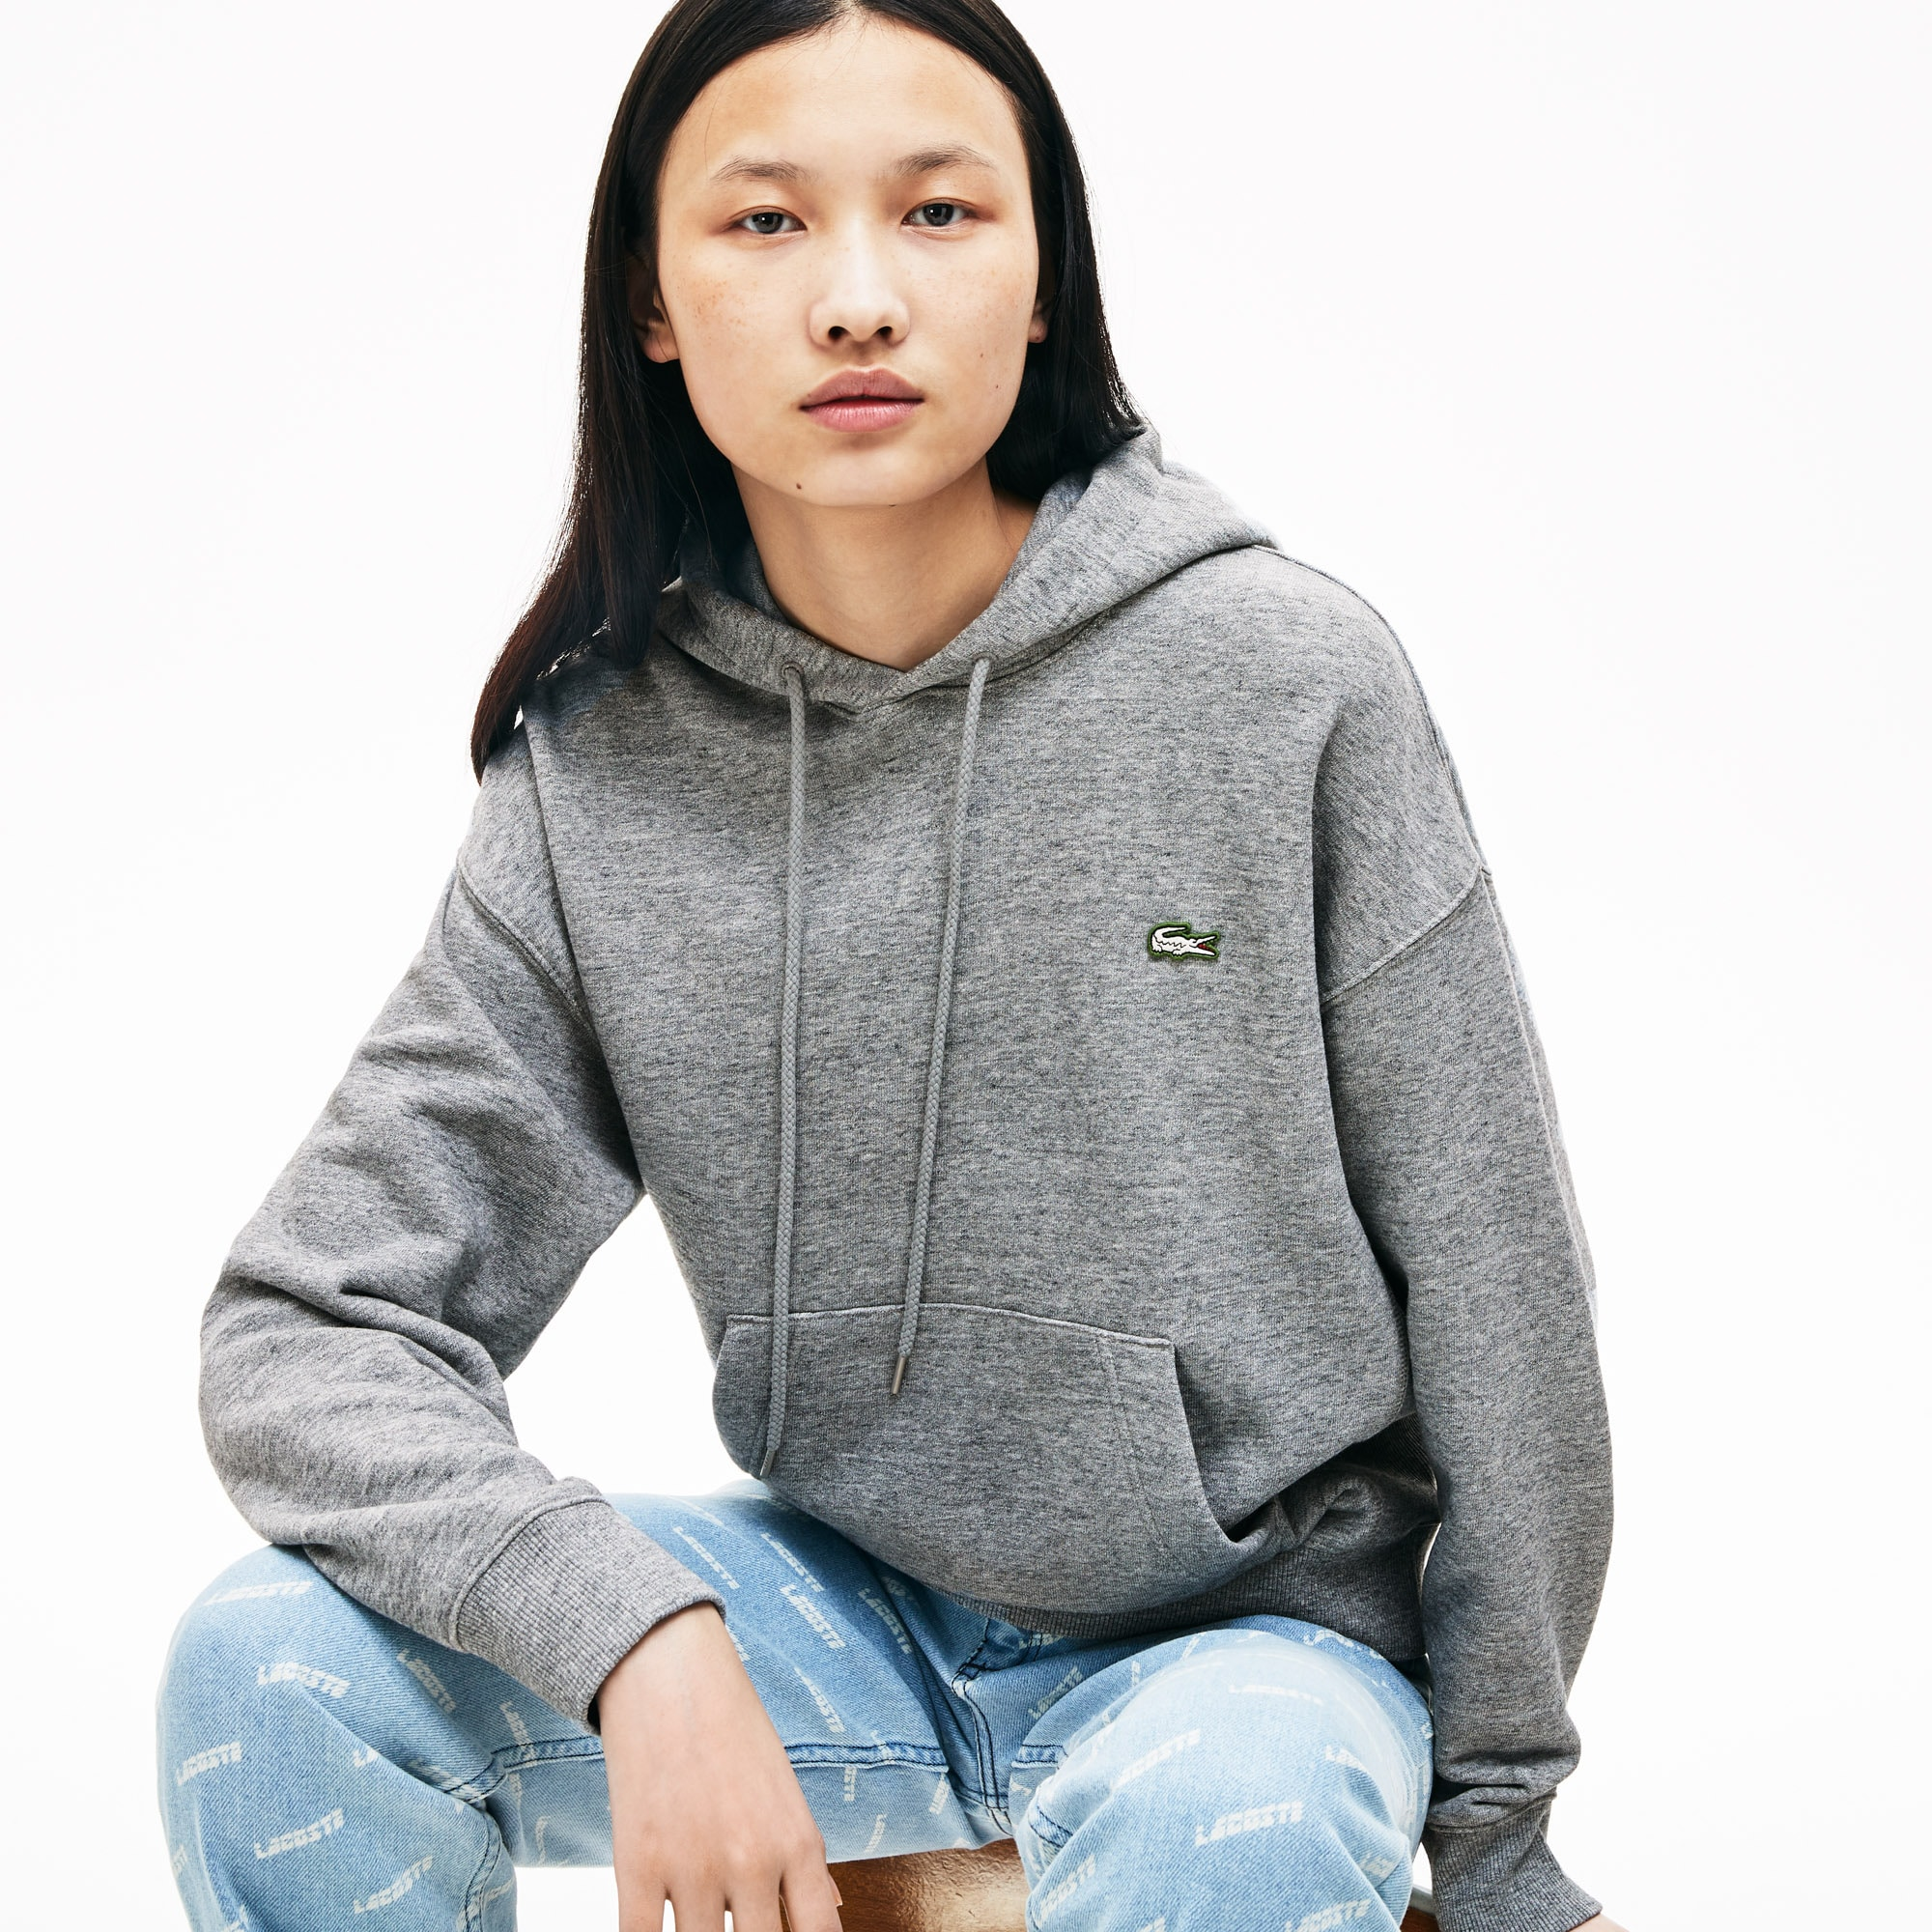 Unisex Lacoste LIVE Hooded Cotton Sweatshirt